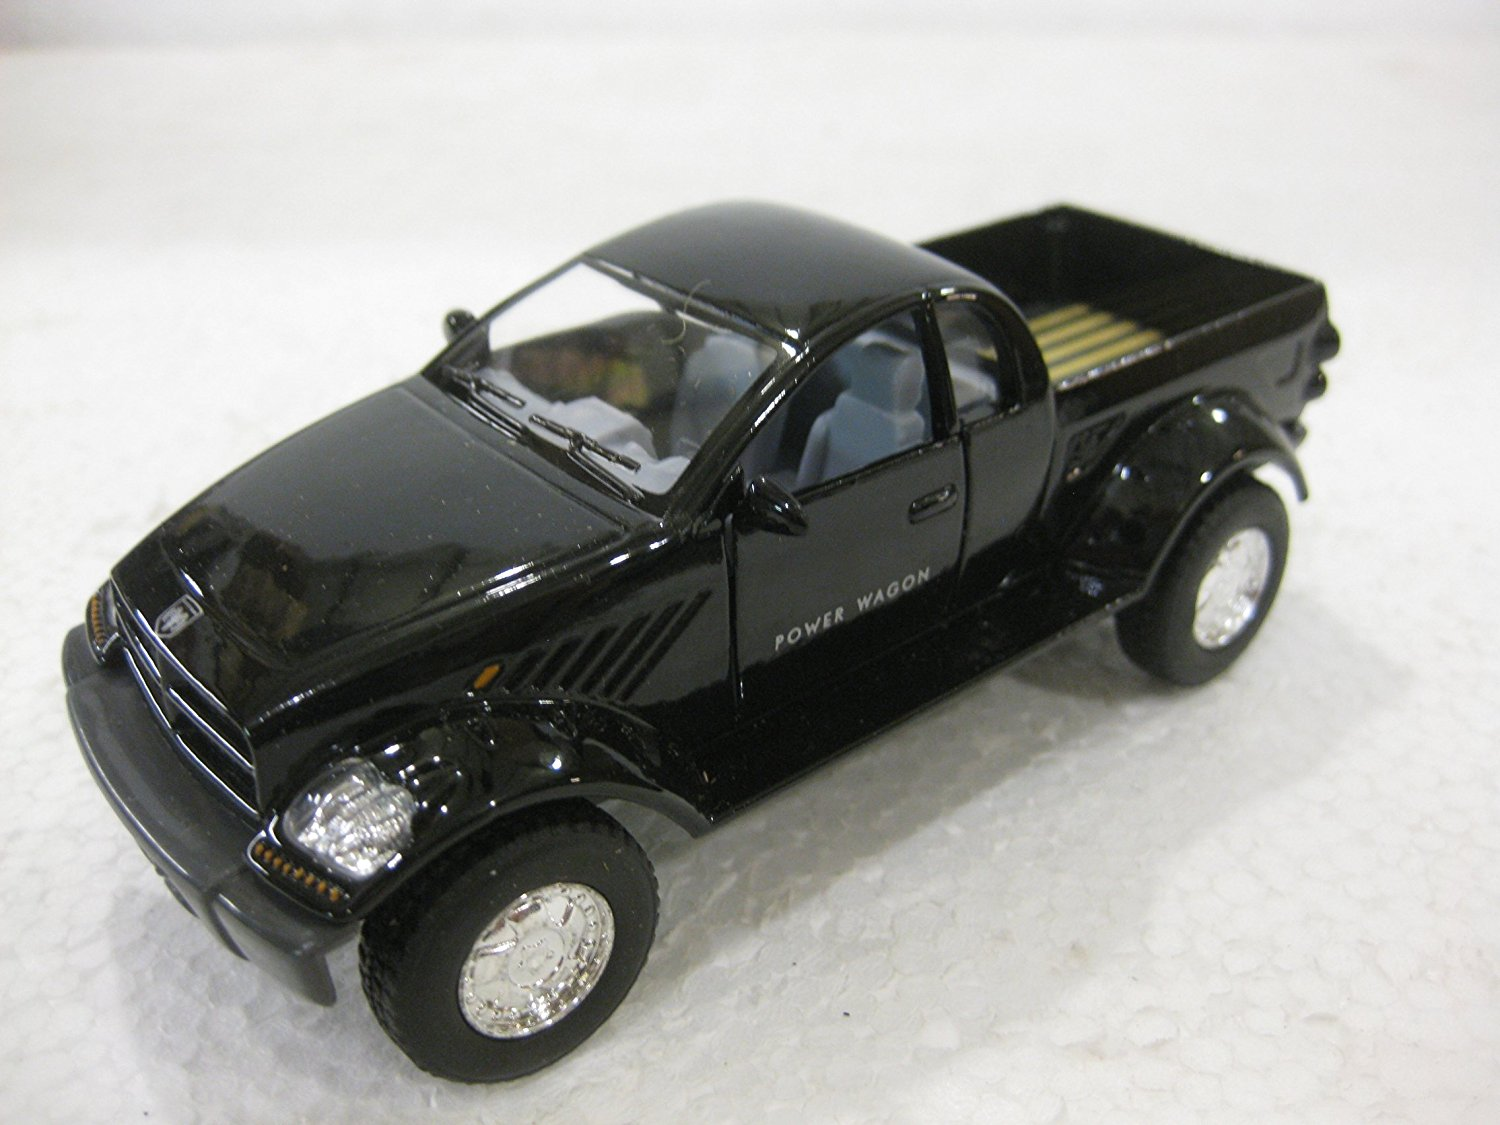 Cheap Dodge Power Wagon For Sale Alberta Find 1954 Tow Truck Get Quotations In Black Diecast 142 Scale By Kinsmart